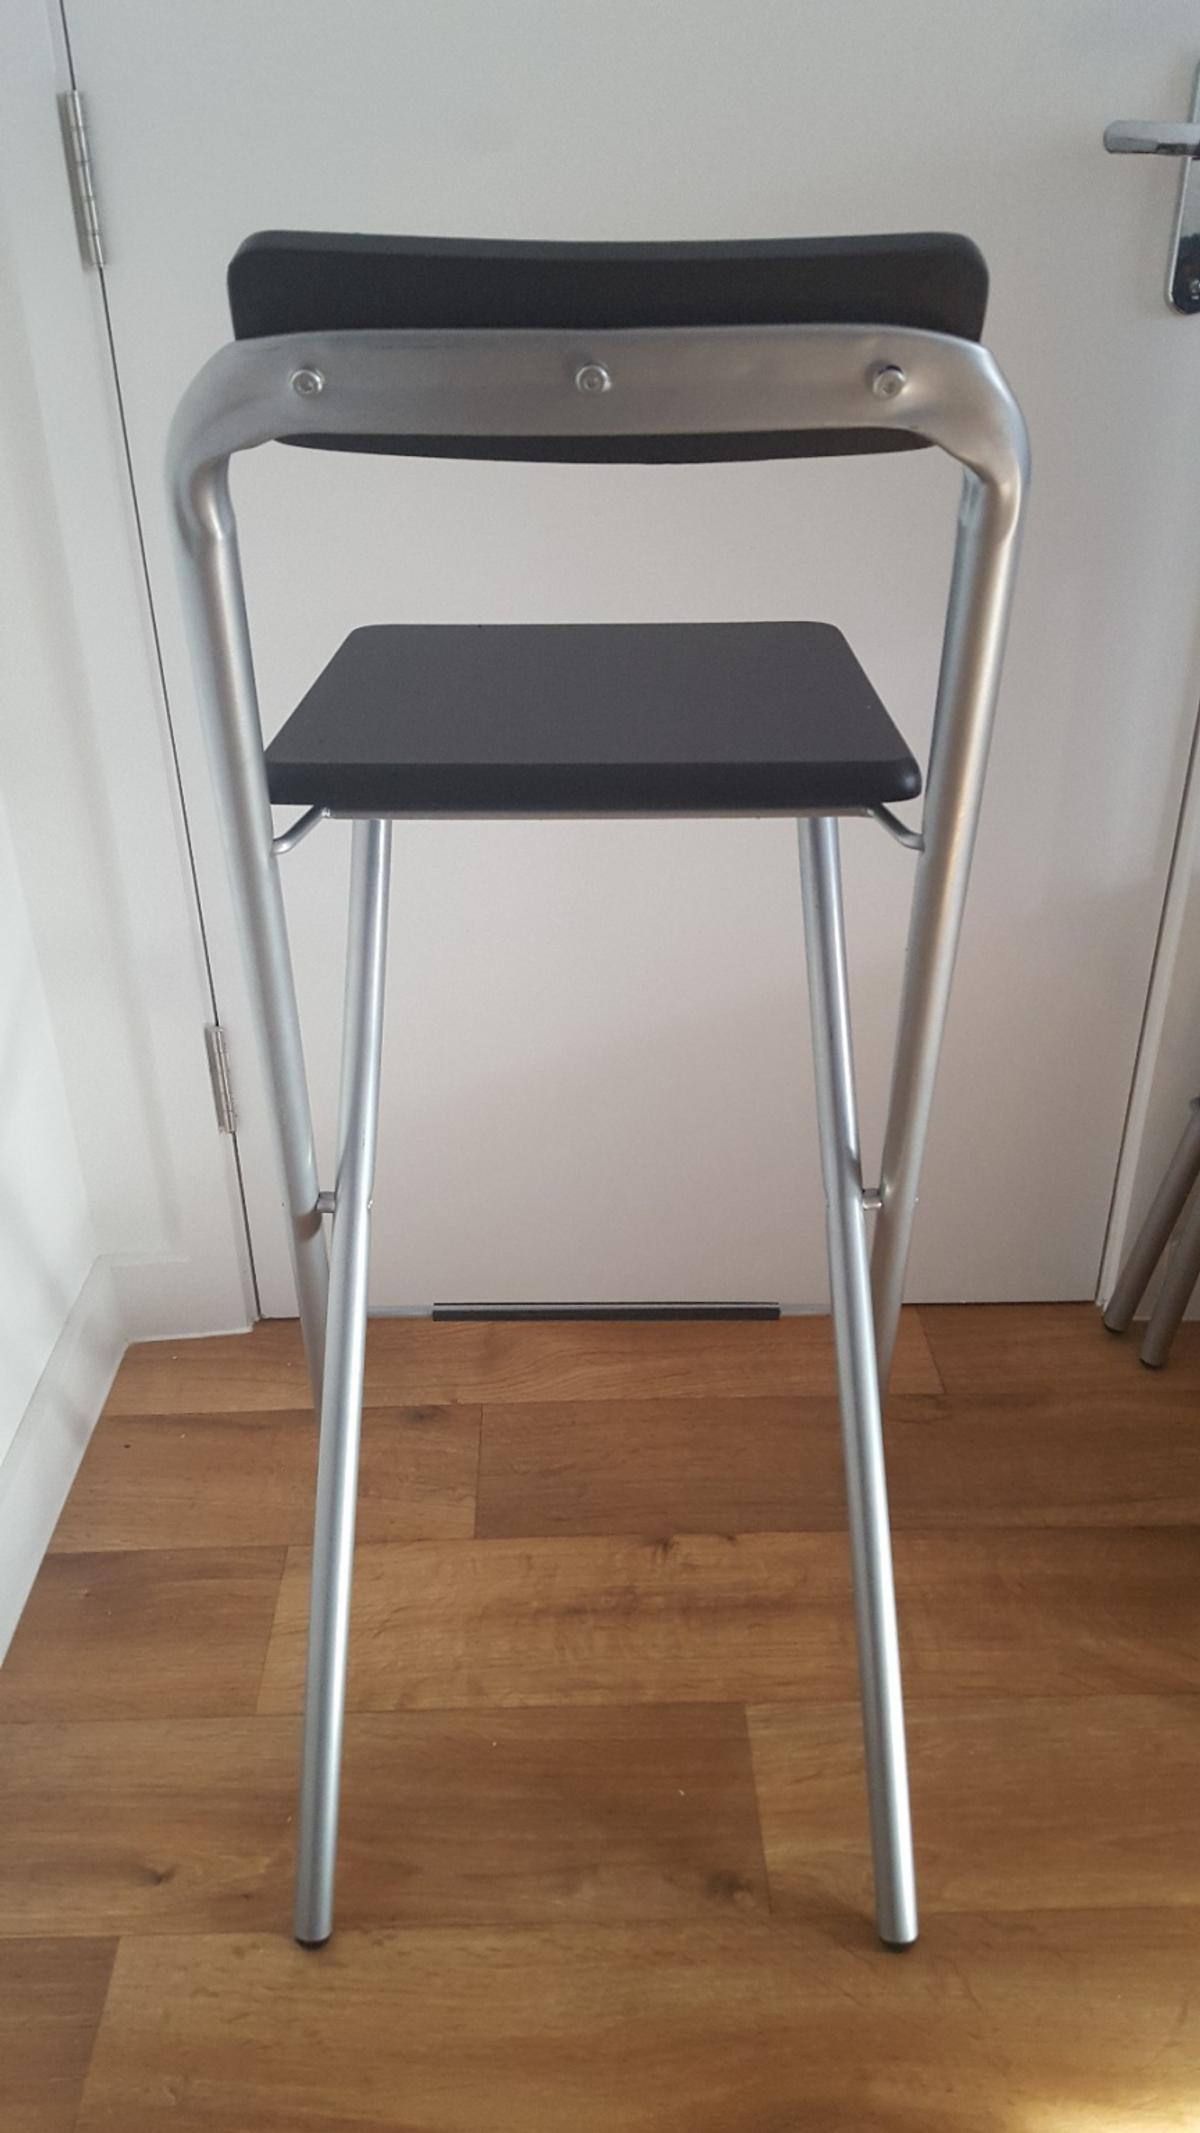 Bar Stools 2 In E9 London For 15 00 For Sale Shpock